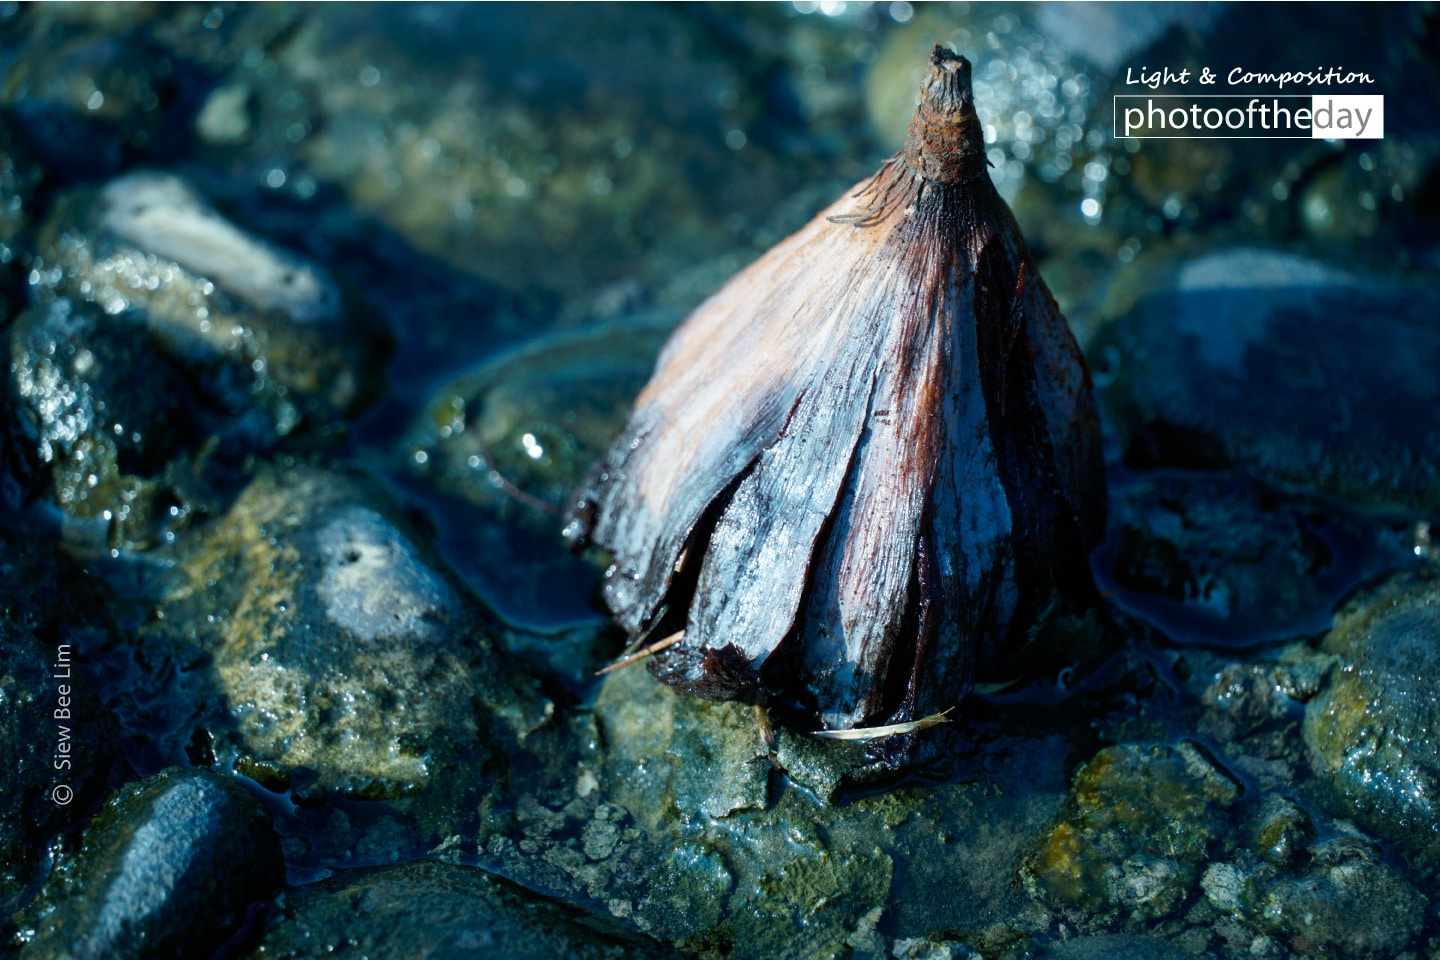 A Decaying Lotus by Siew Bee Lim